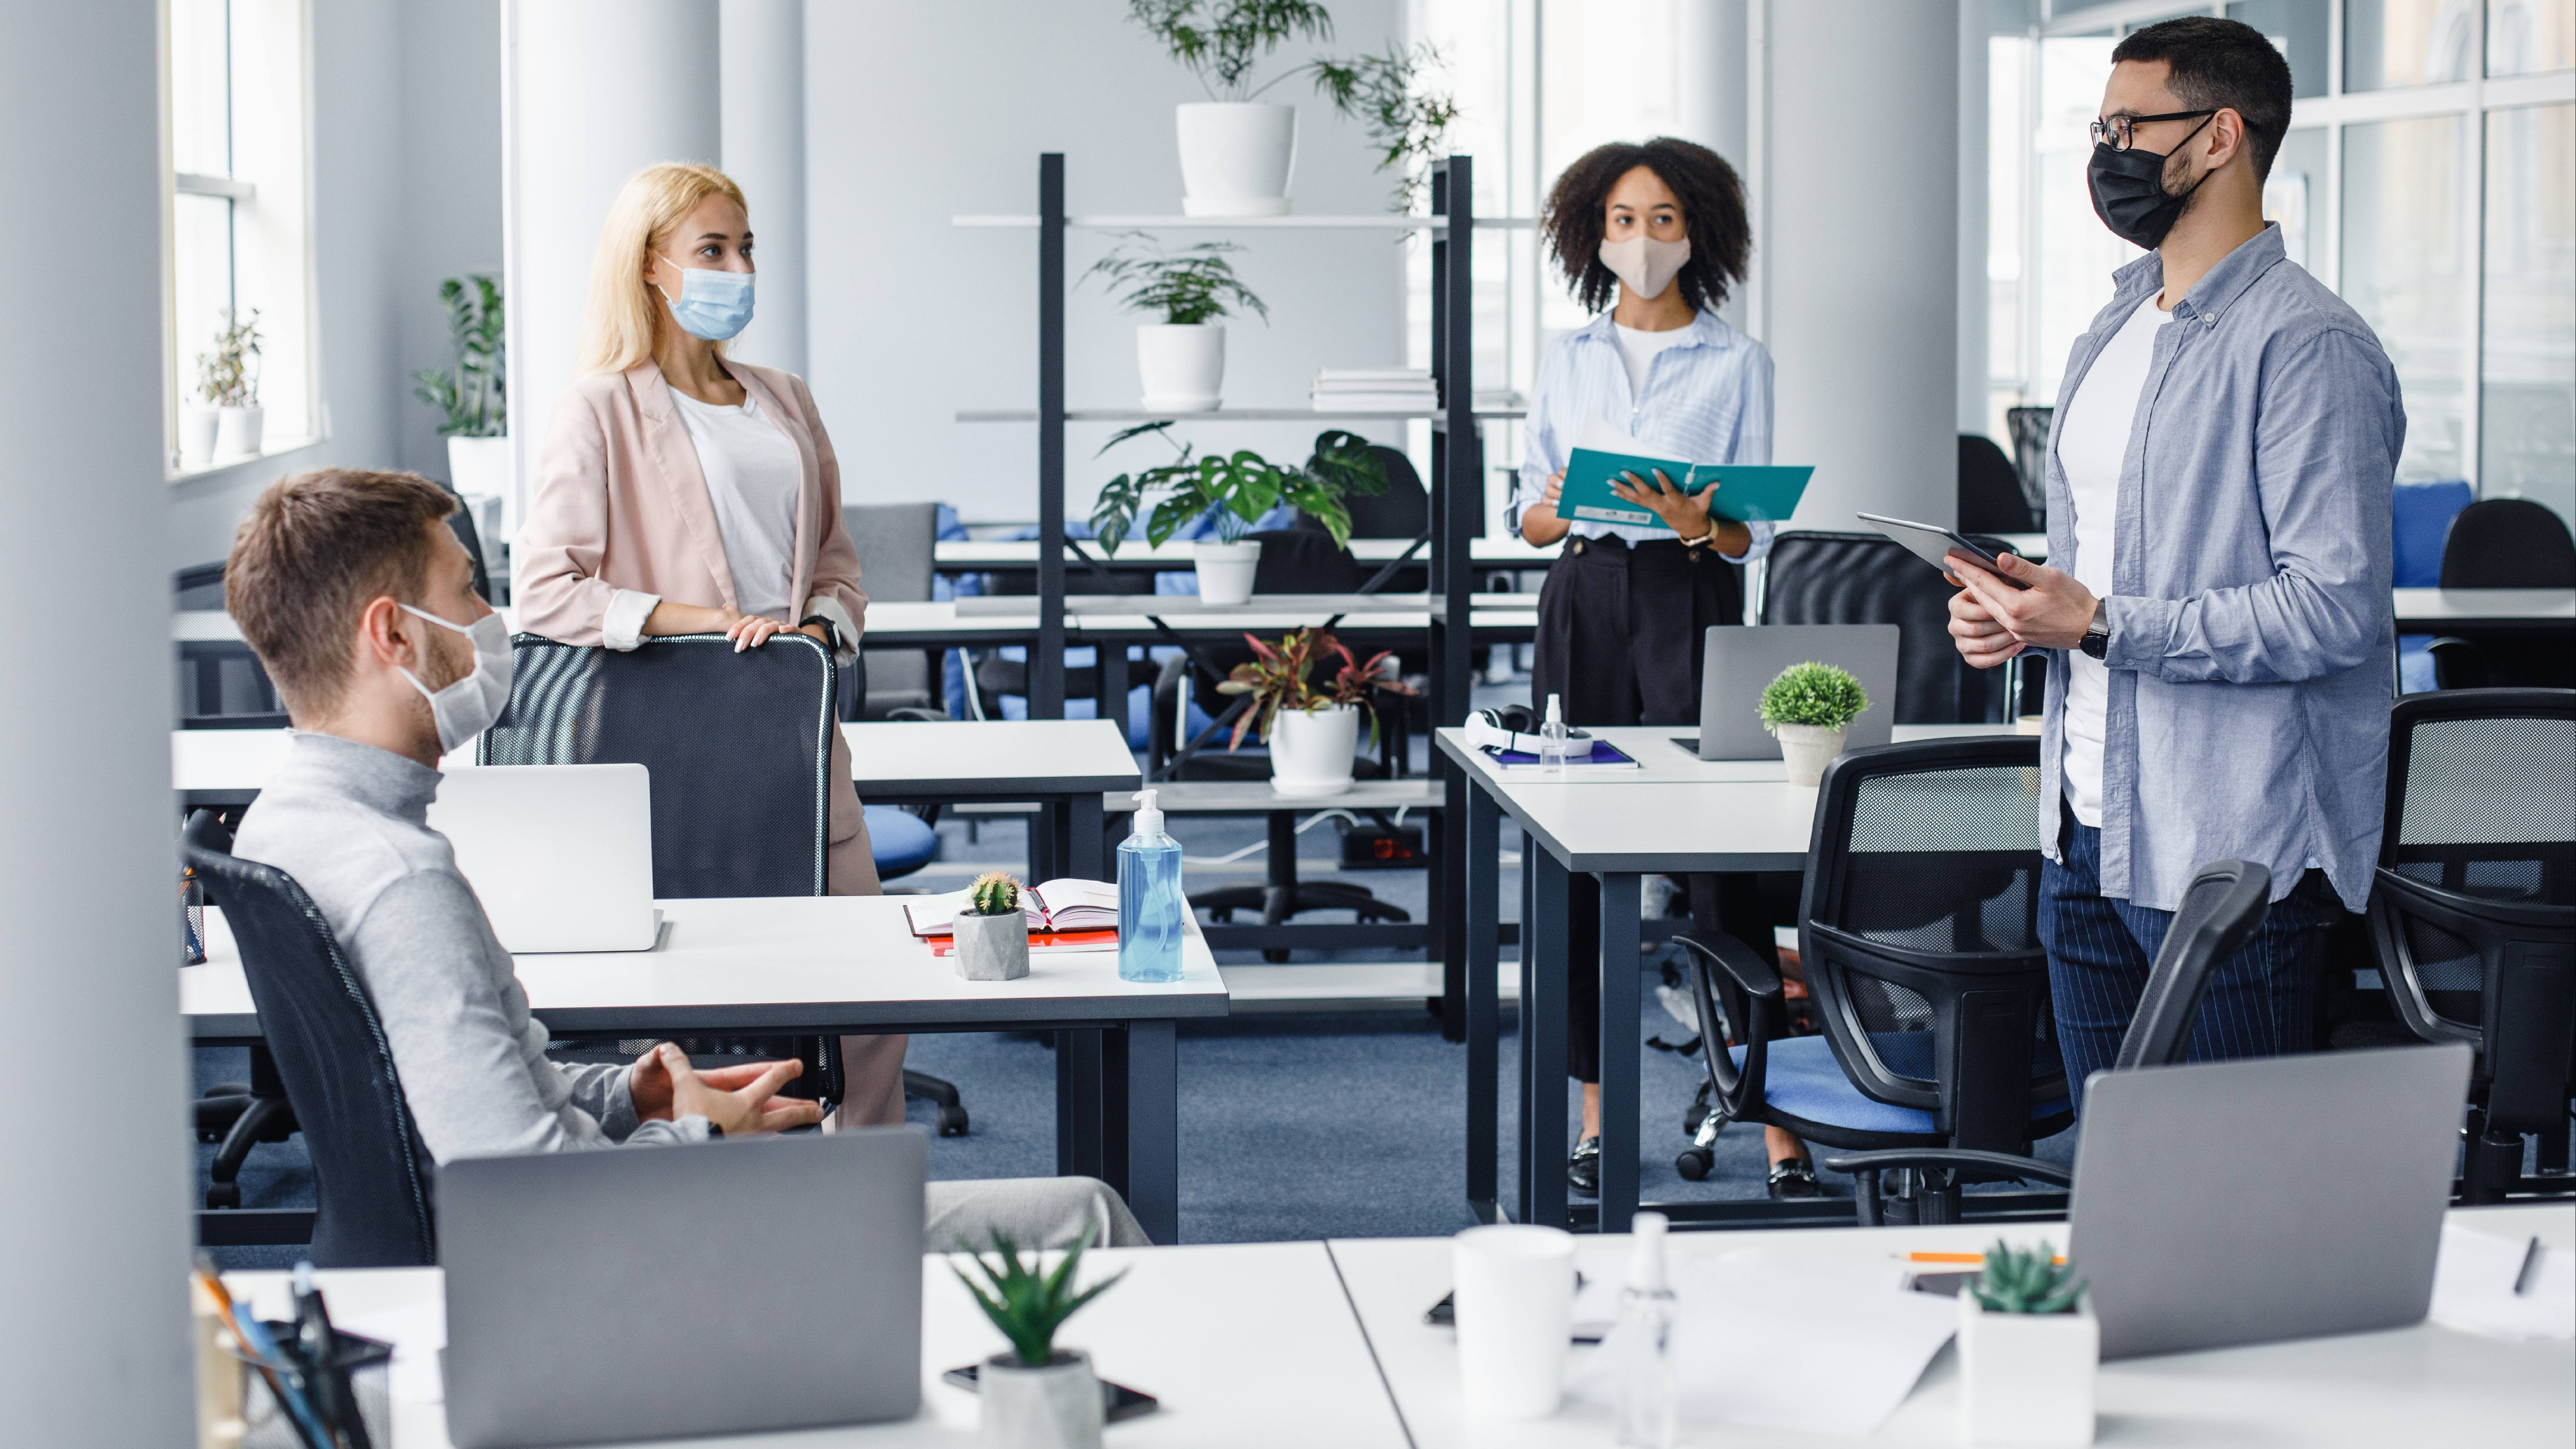 a group of young diverse students or business people in an office wearing face masks and standaing six feet apart for COVID-19 social distancing